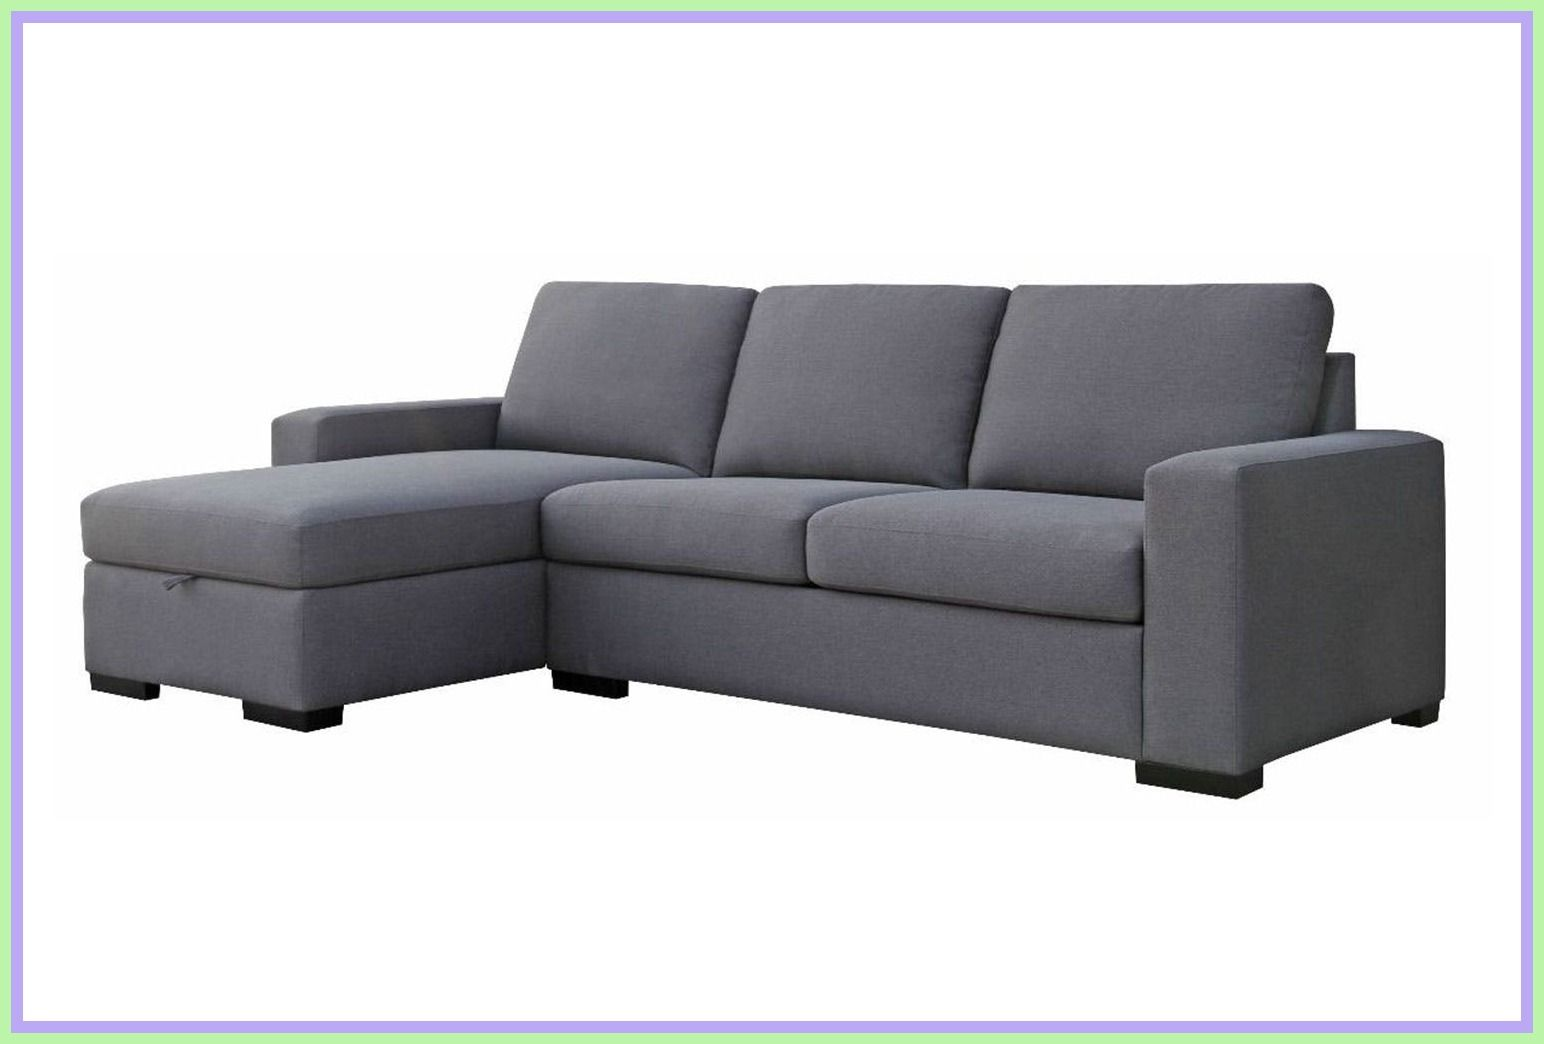 83 Reference Of Corner Couch Sofa Bed Nz In 2020 Sofa Bed With Chaise Fabric Sofa Bed Sofa Couch Bed